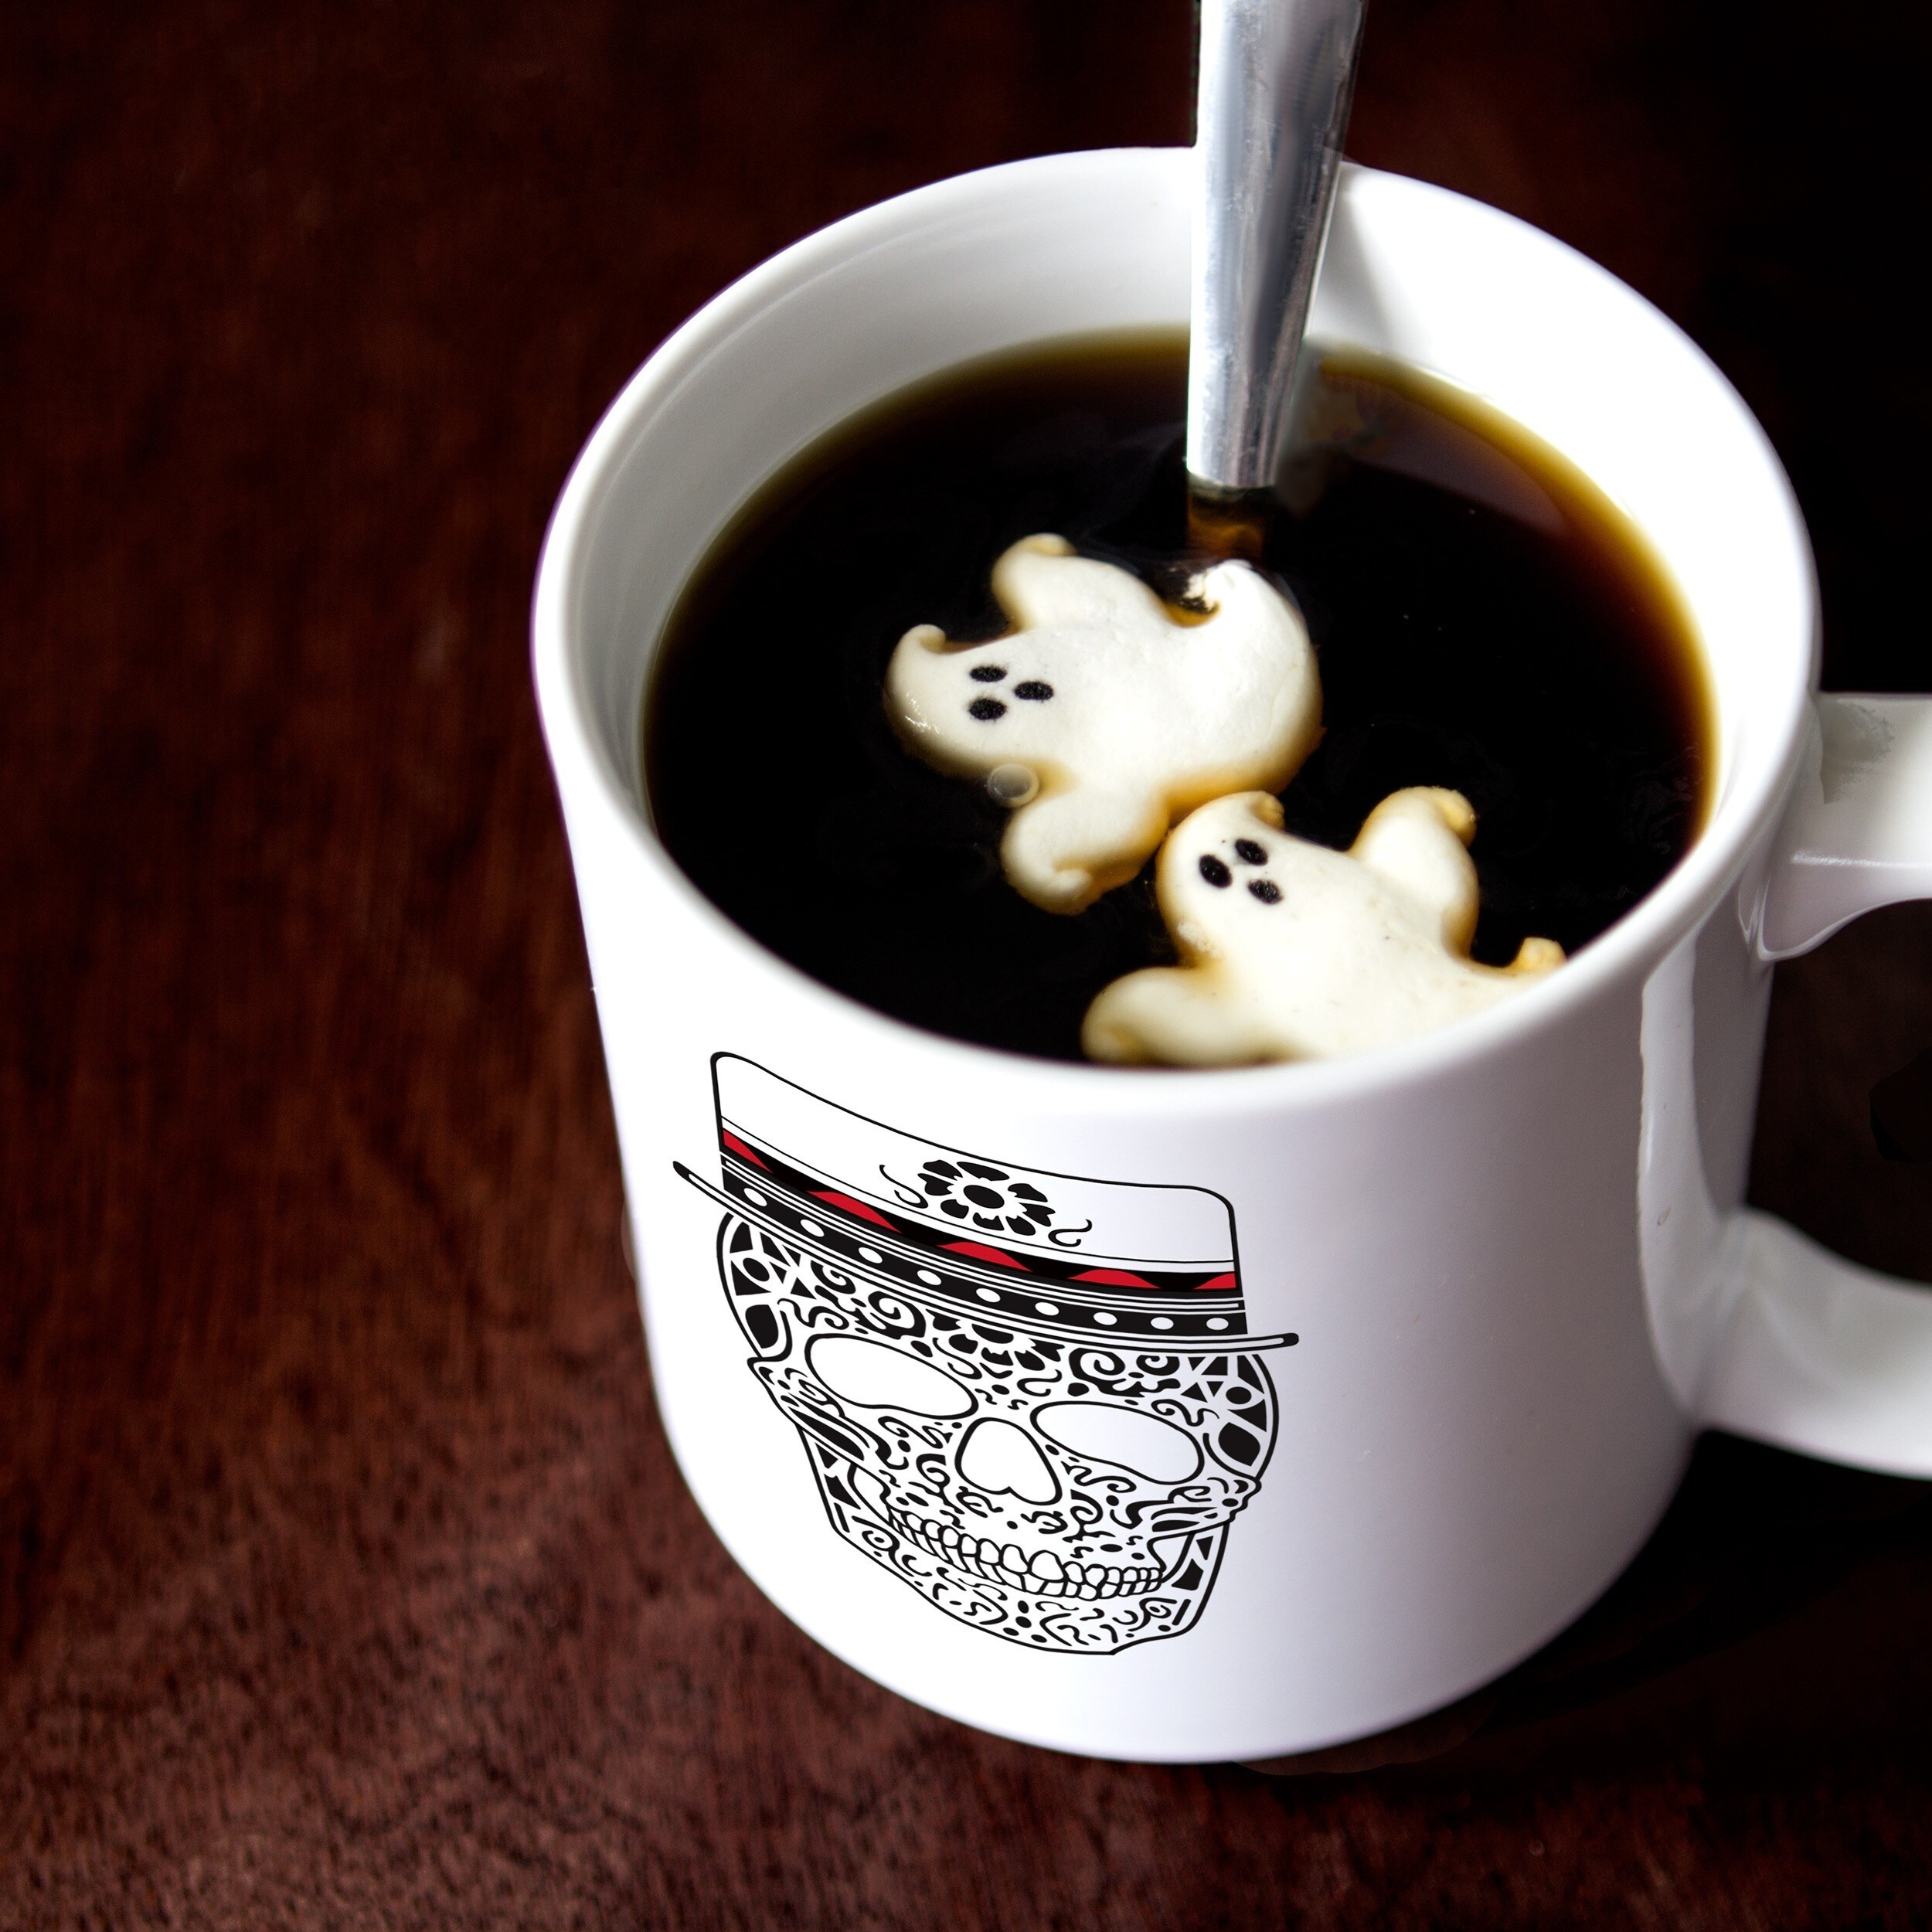 His Hers Sugar Skull White Cermaic 20 Ounce Coffee Mug Set Free Shipping On Orders Over 45 11823728